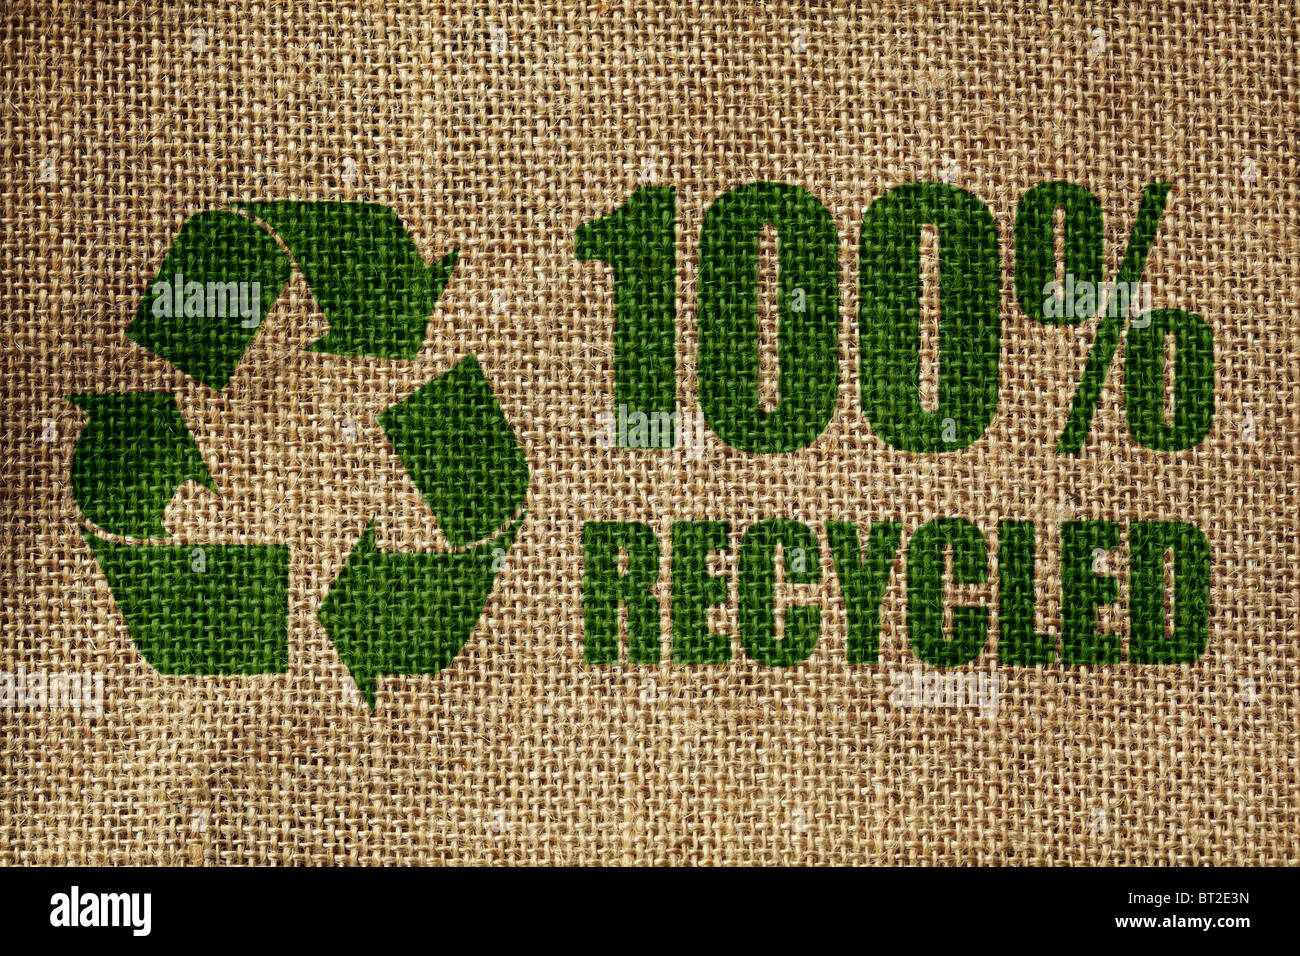 Symbole de recyclage Photo Stock